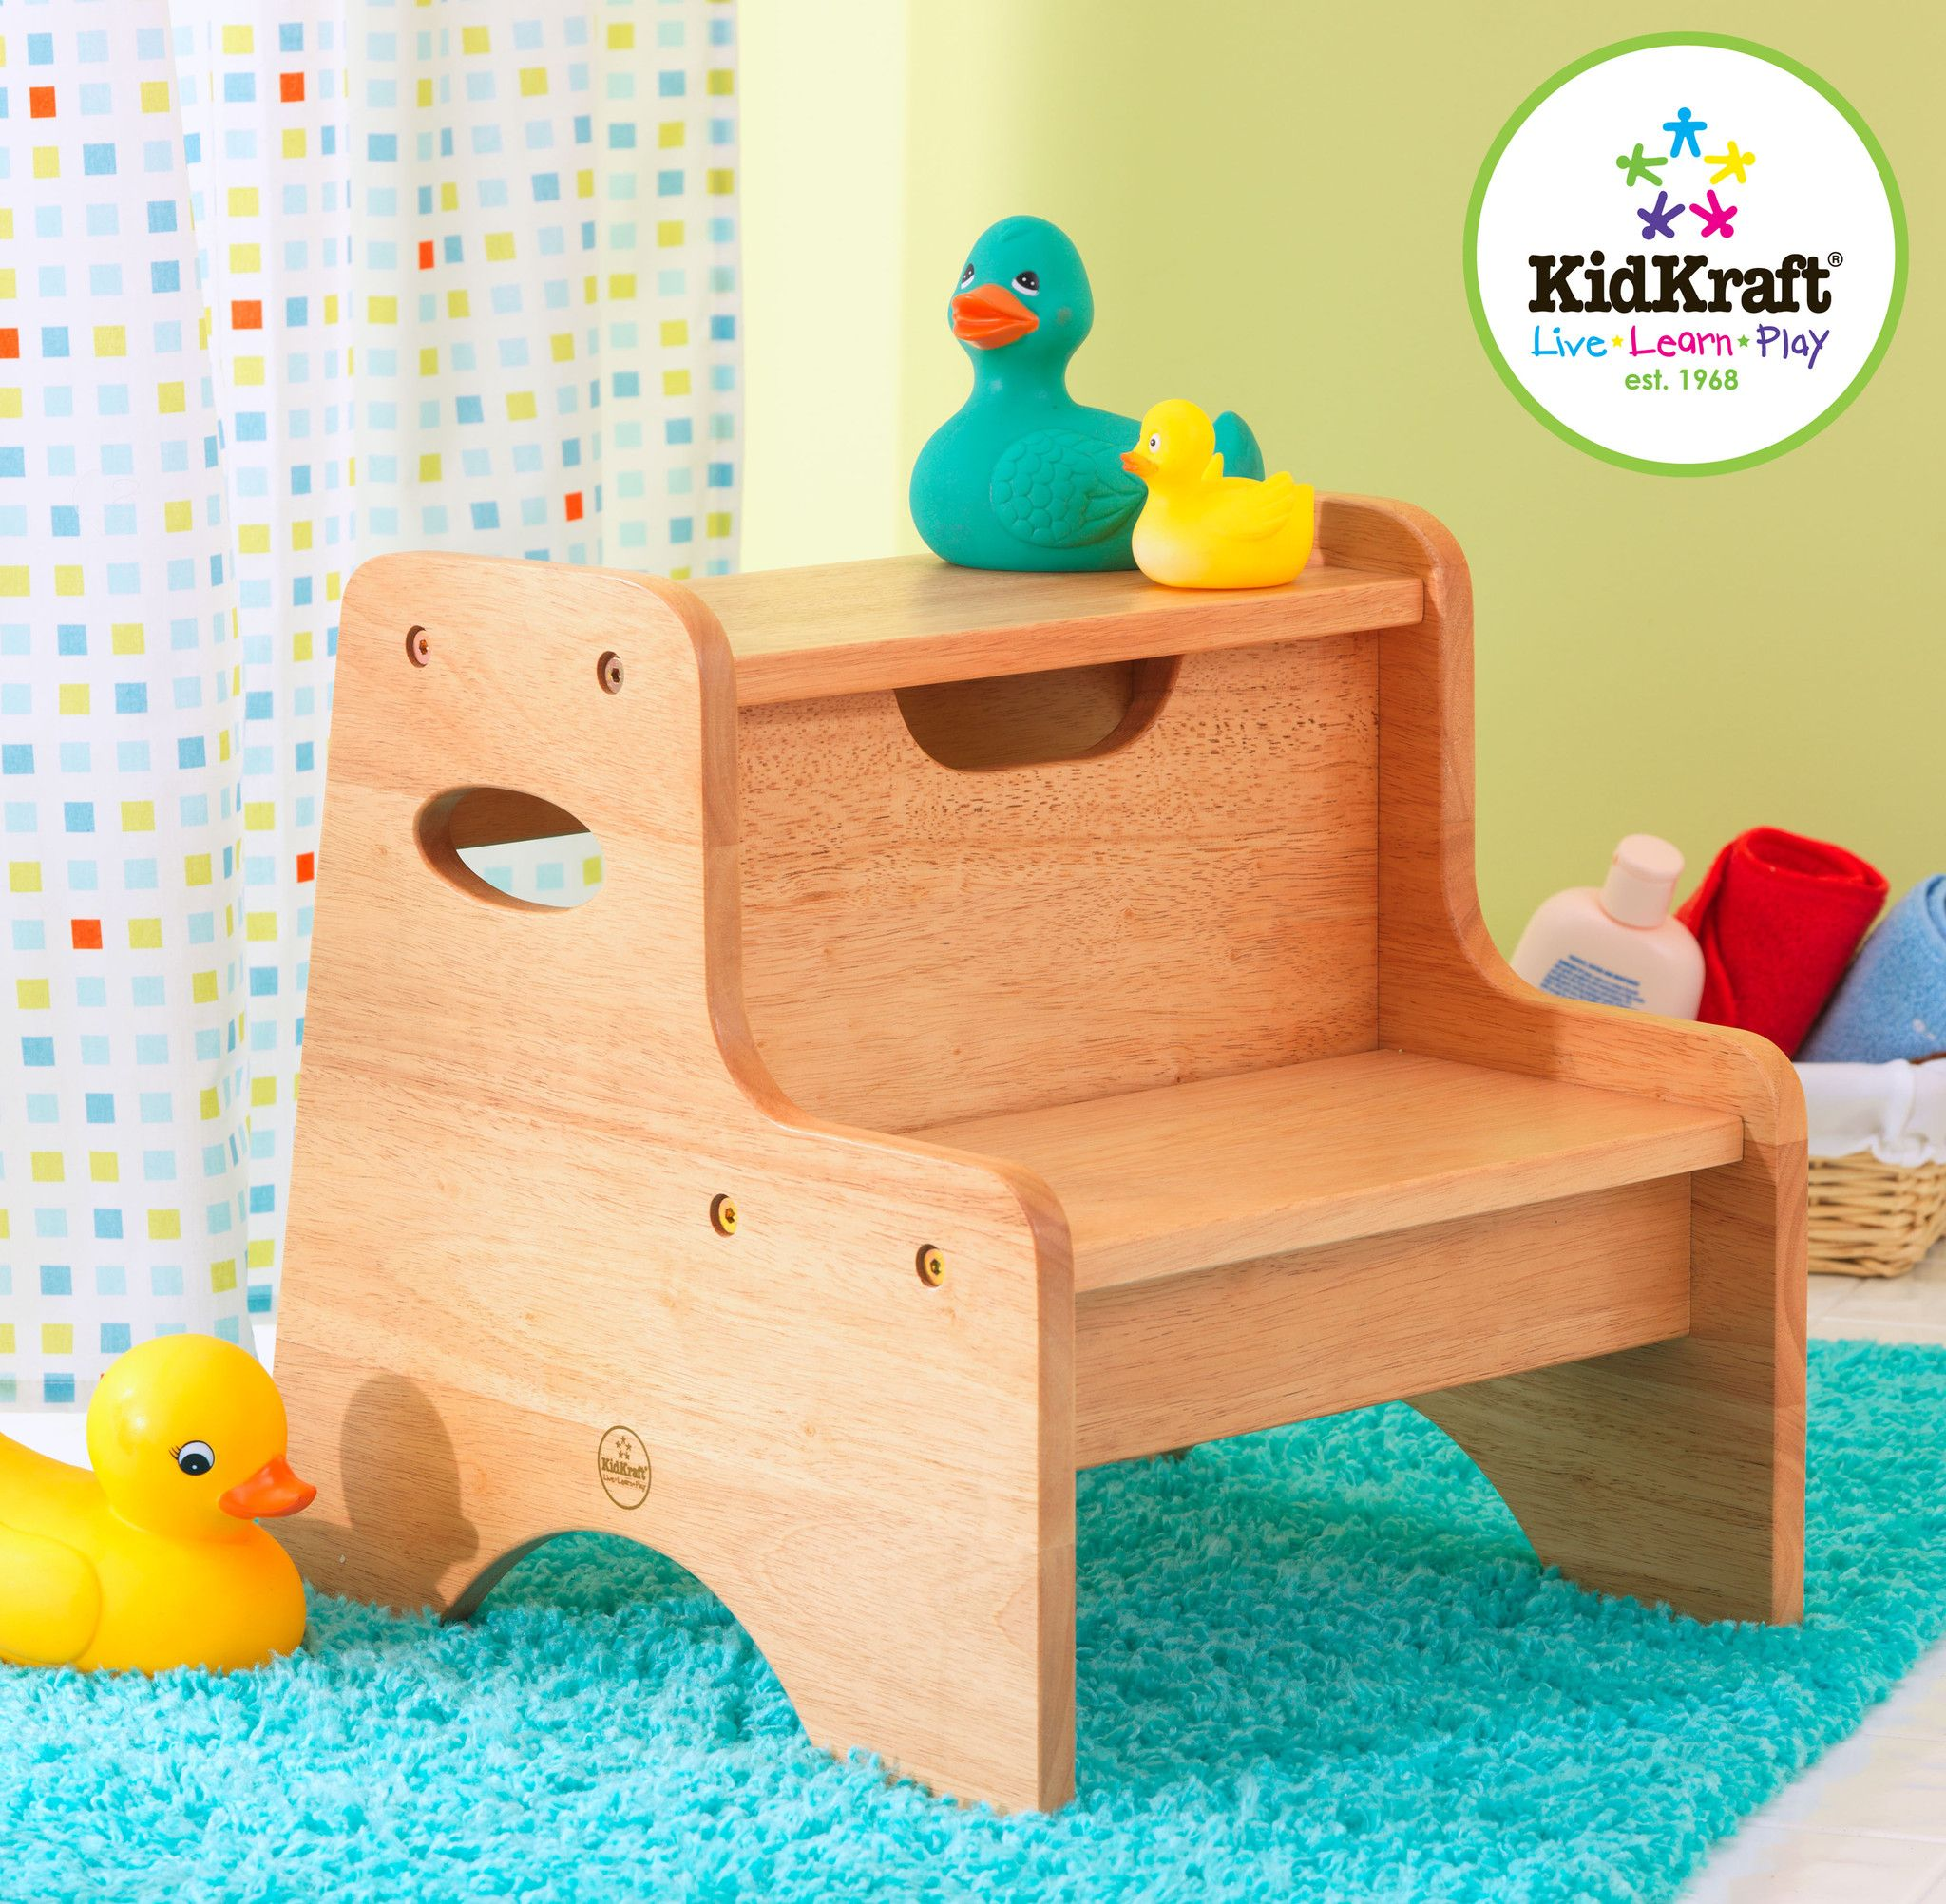 The Kidkraft Two Step Stool Helps Toddlers Reach Counter